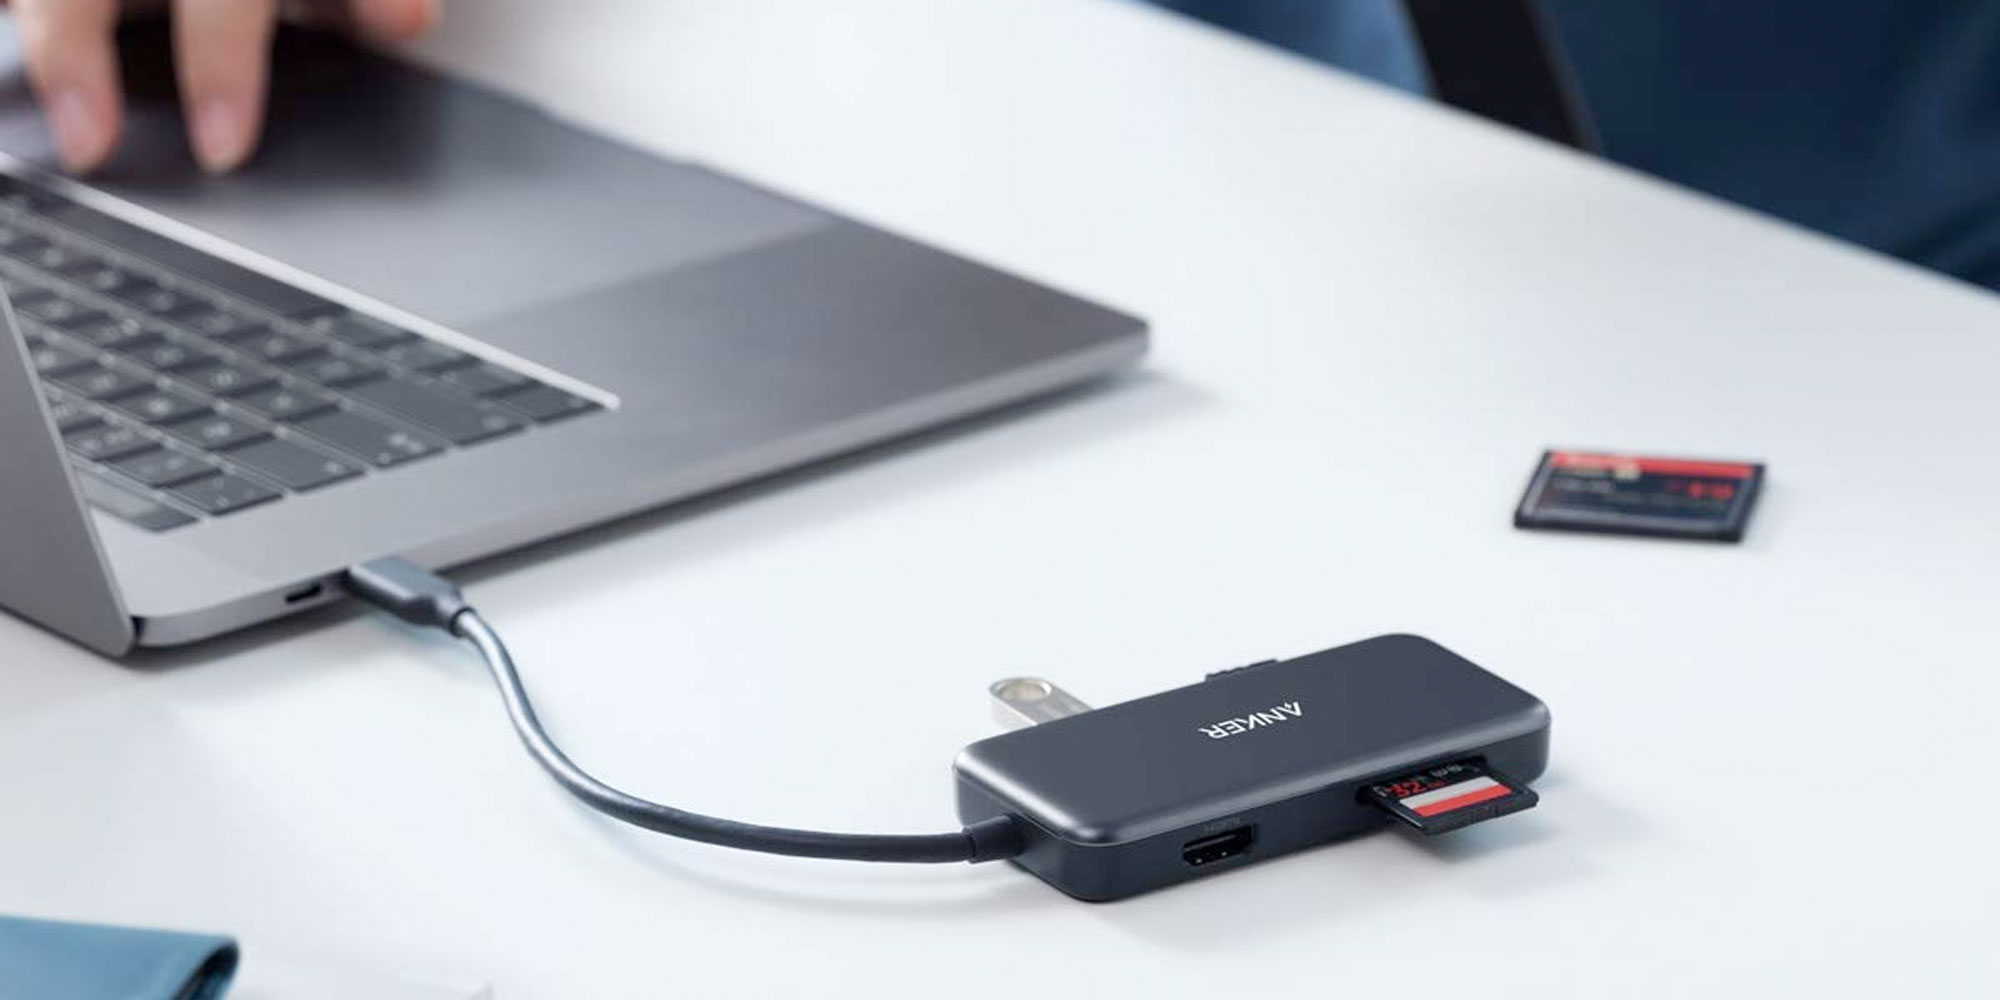 Anker's 5-in-1 USB-C hubs pack Ethernet, HDMI, USB 3.0, and SD from $18 - 9to5Toys